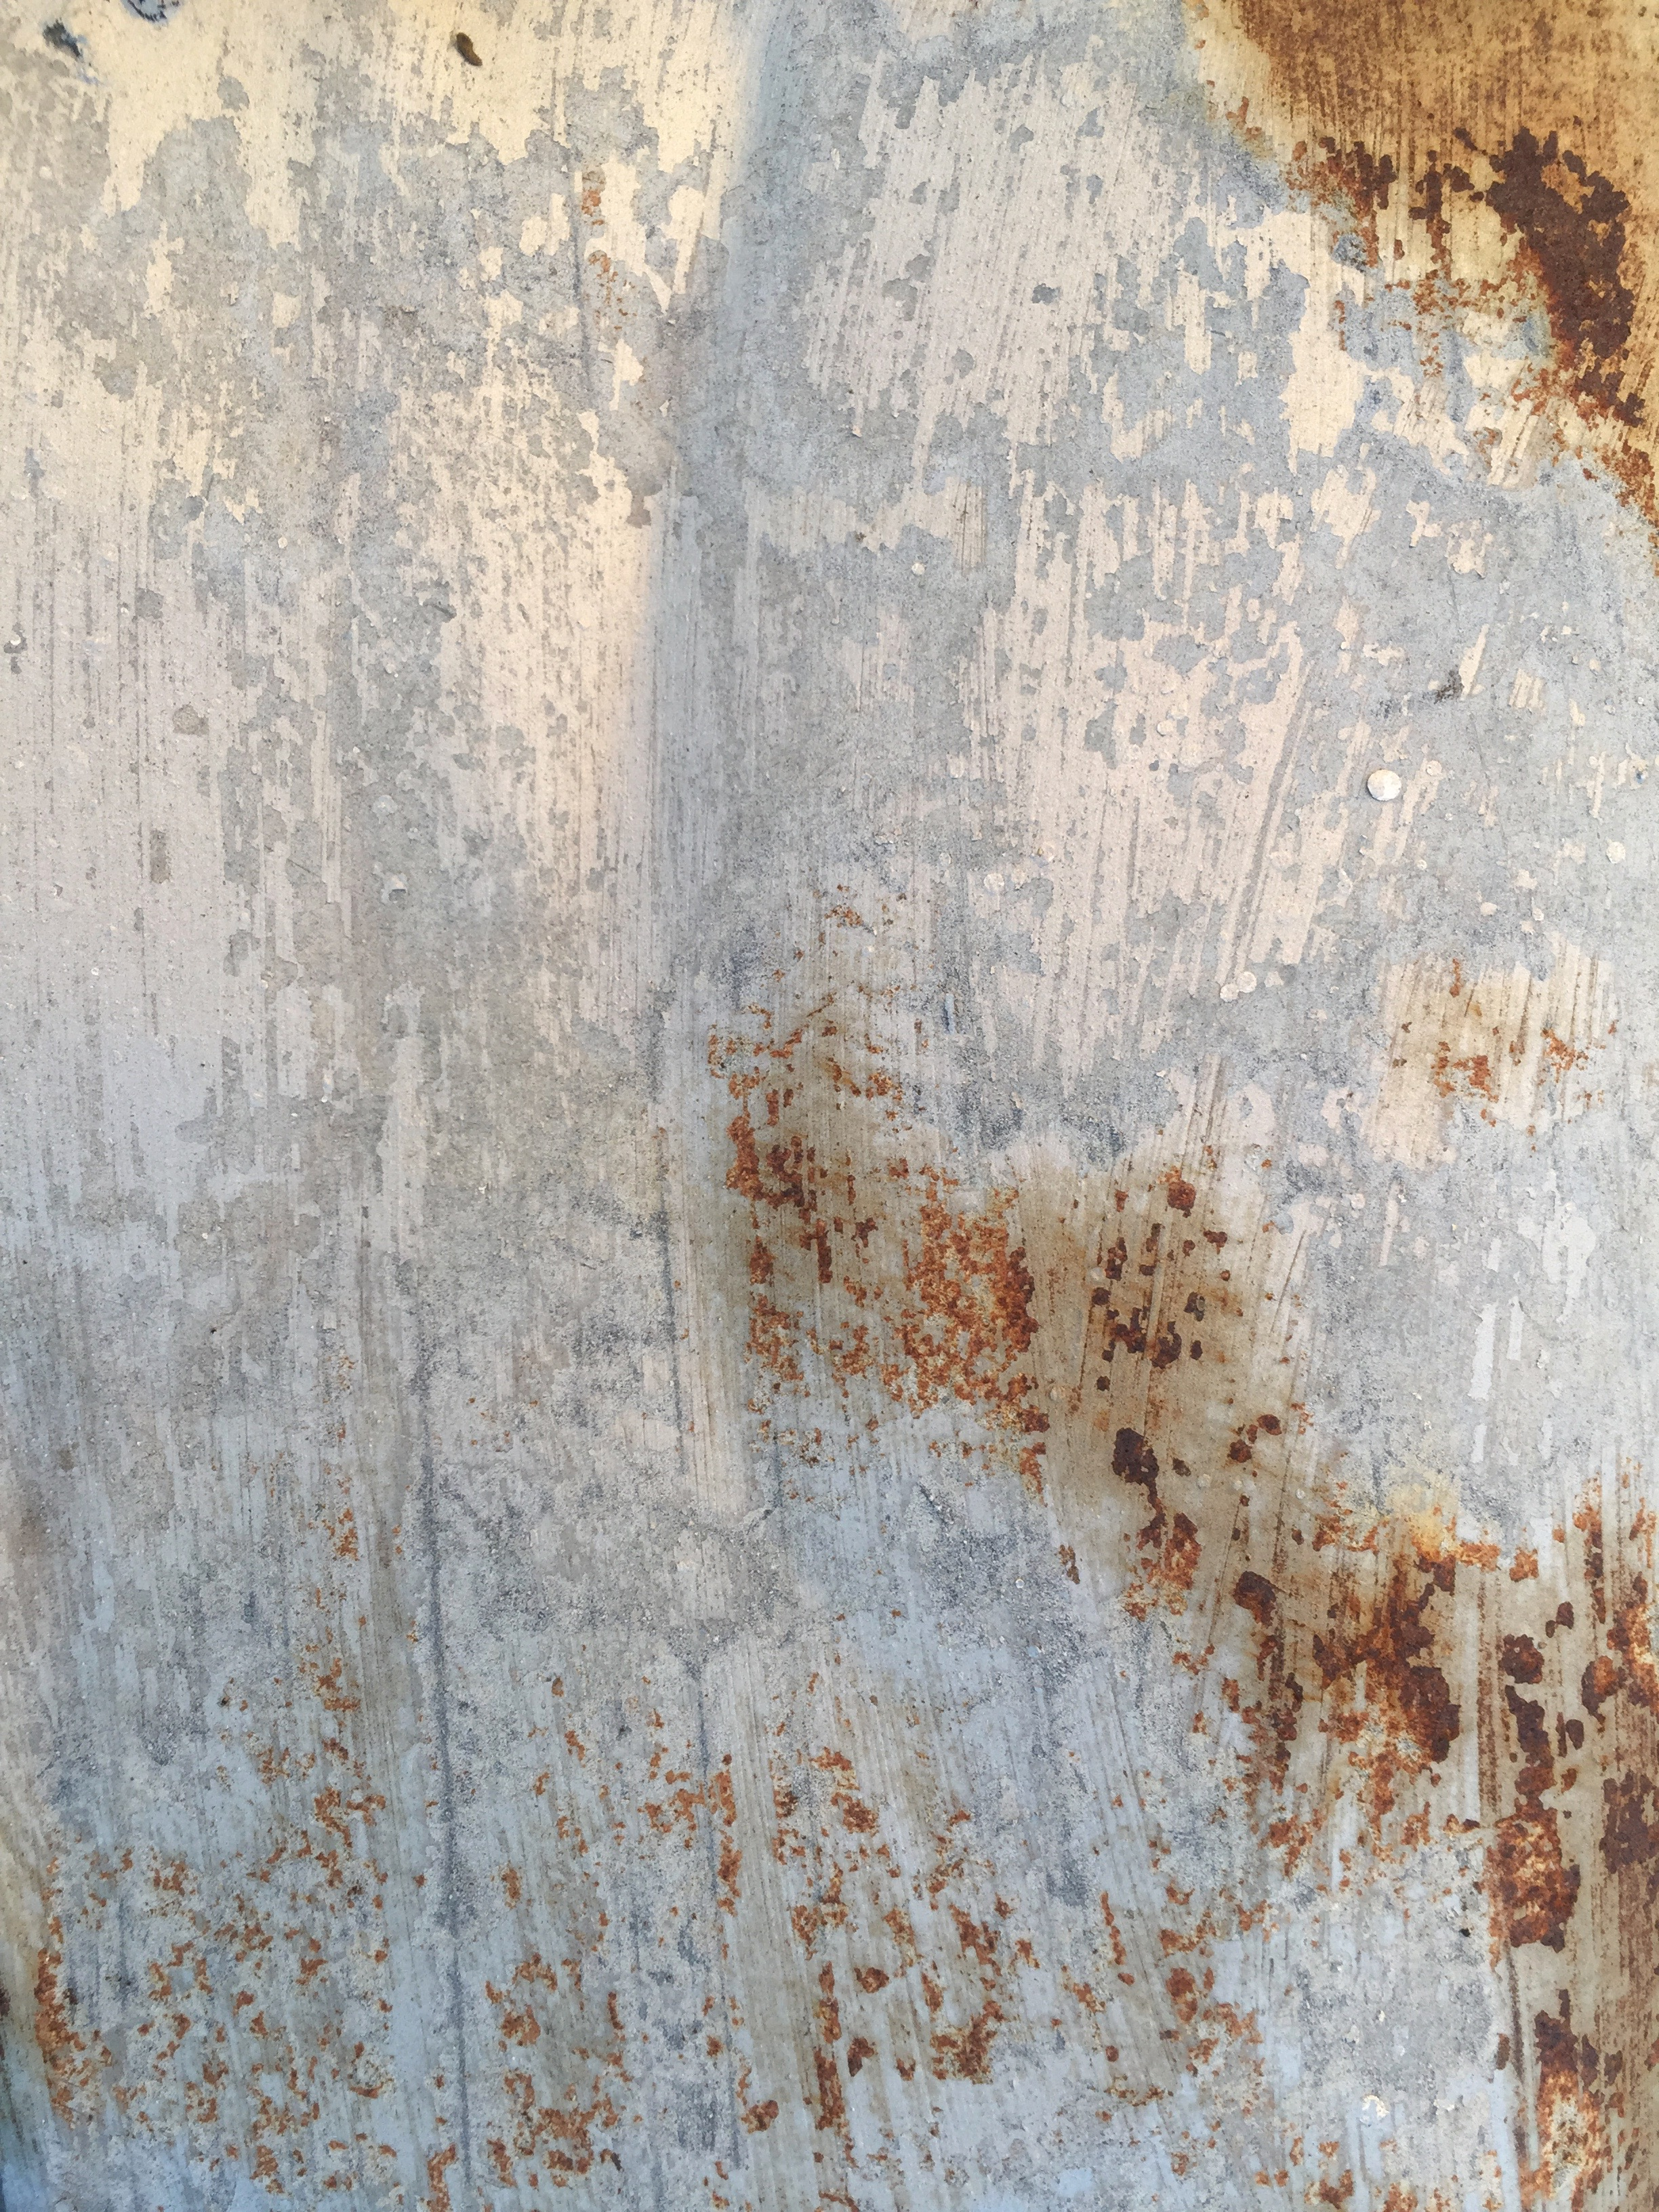 Corroding Metal with Rust texture | Free Textures